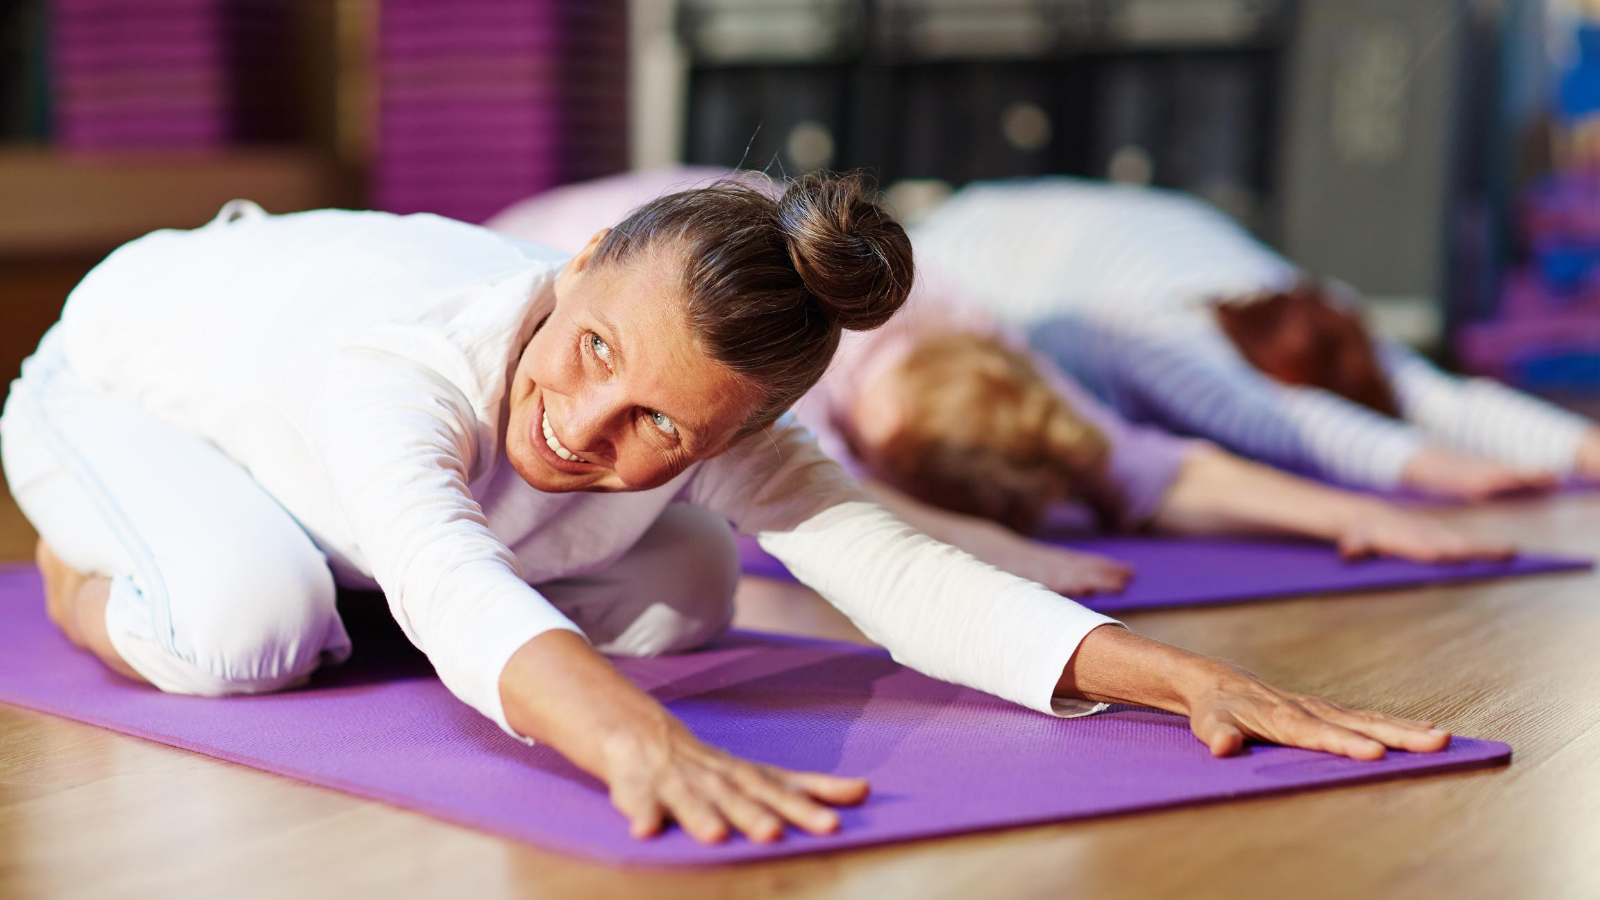 The benefits of yoga and mindfulness meditation to aid in reducing chronic pain